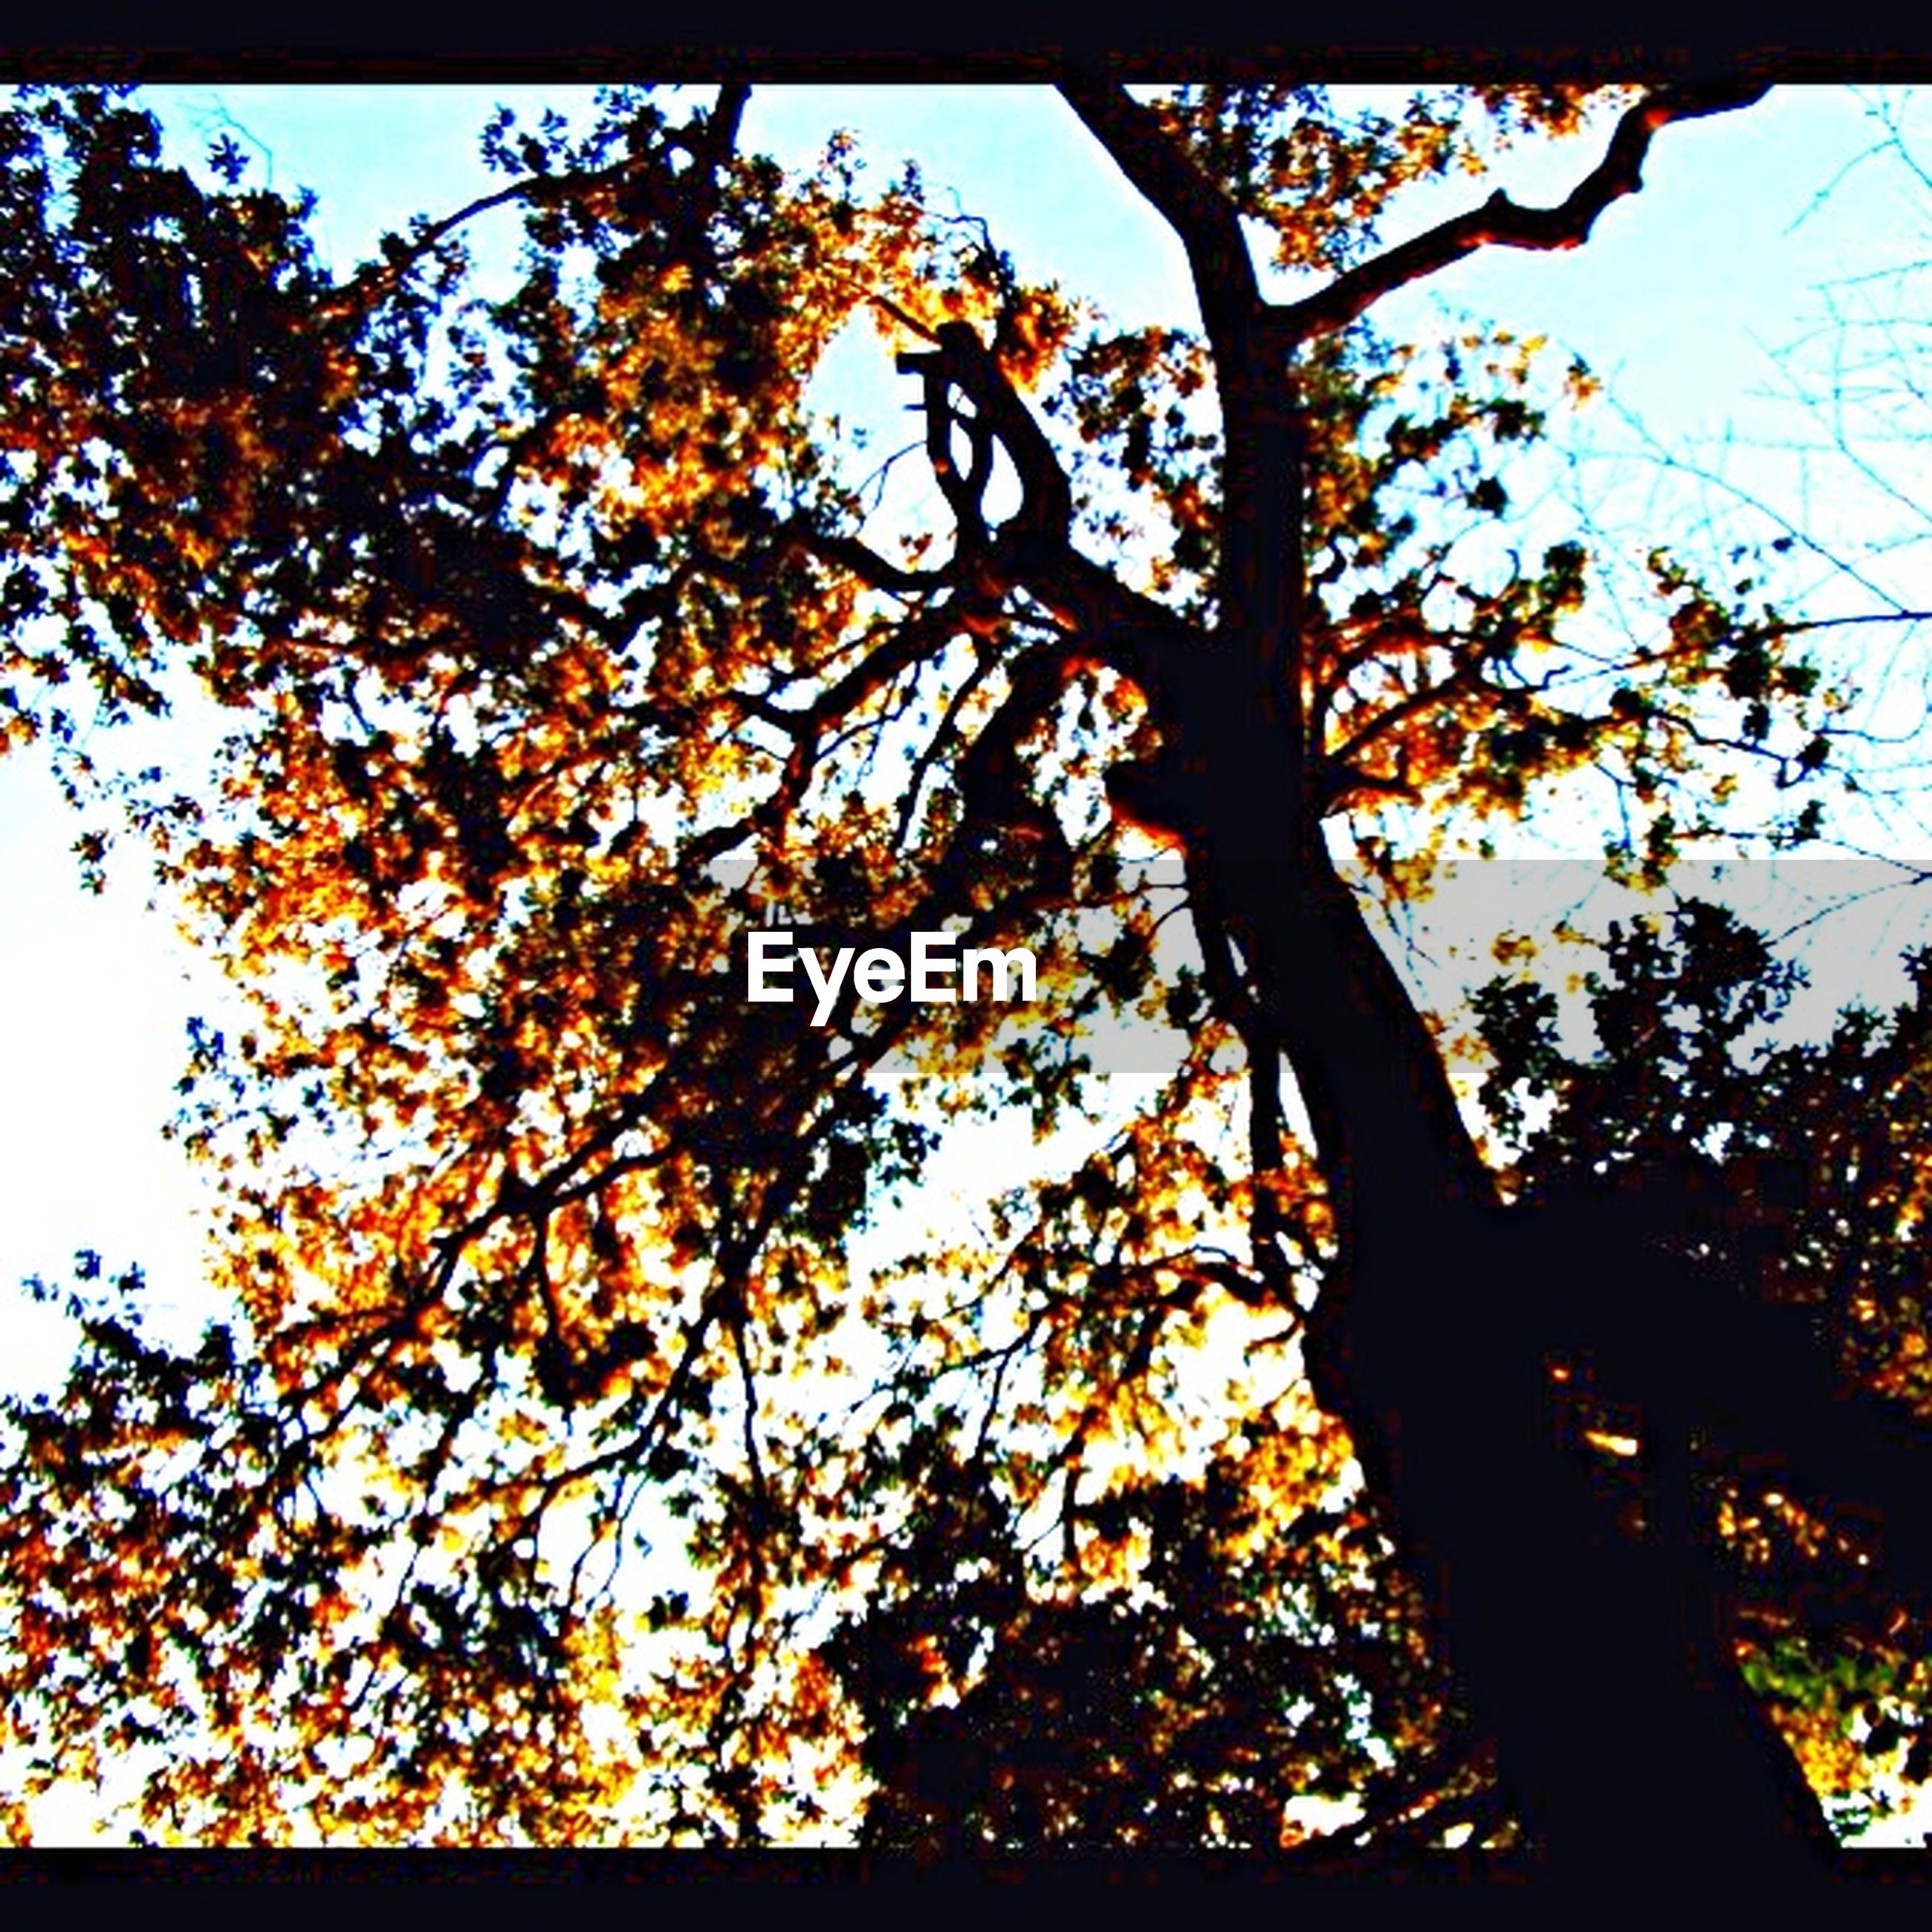 tree, low angle view, branch, autumn, growth, nature, change, sky, tranquility, beauty in nature, tree trunk, sunlight, orange color, clear sky, leaf, season, no people, outdoors, scenics, day